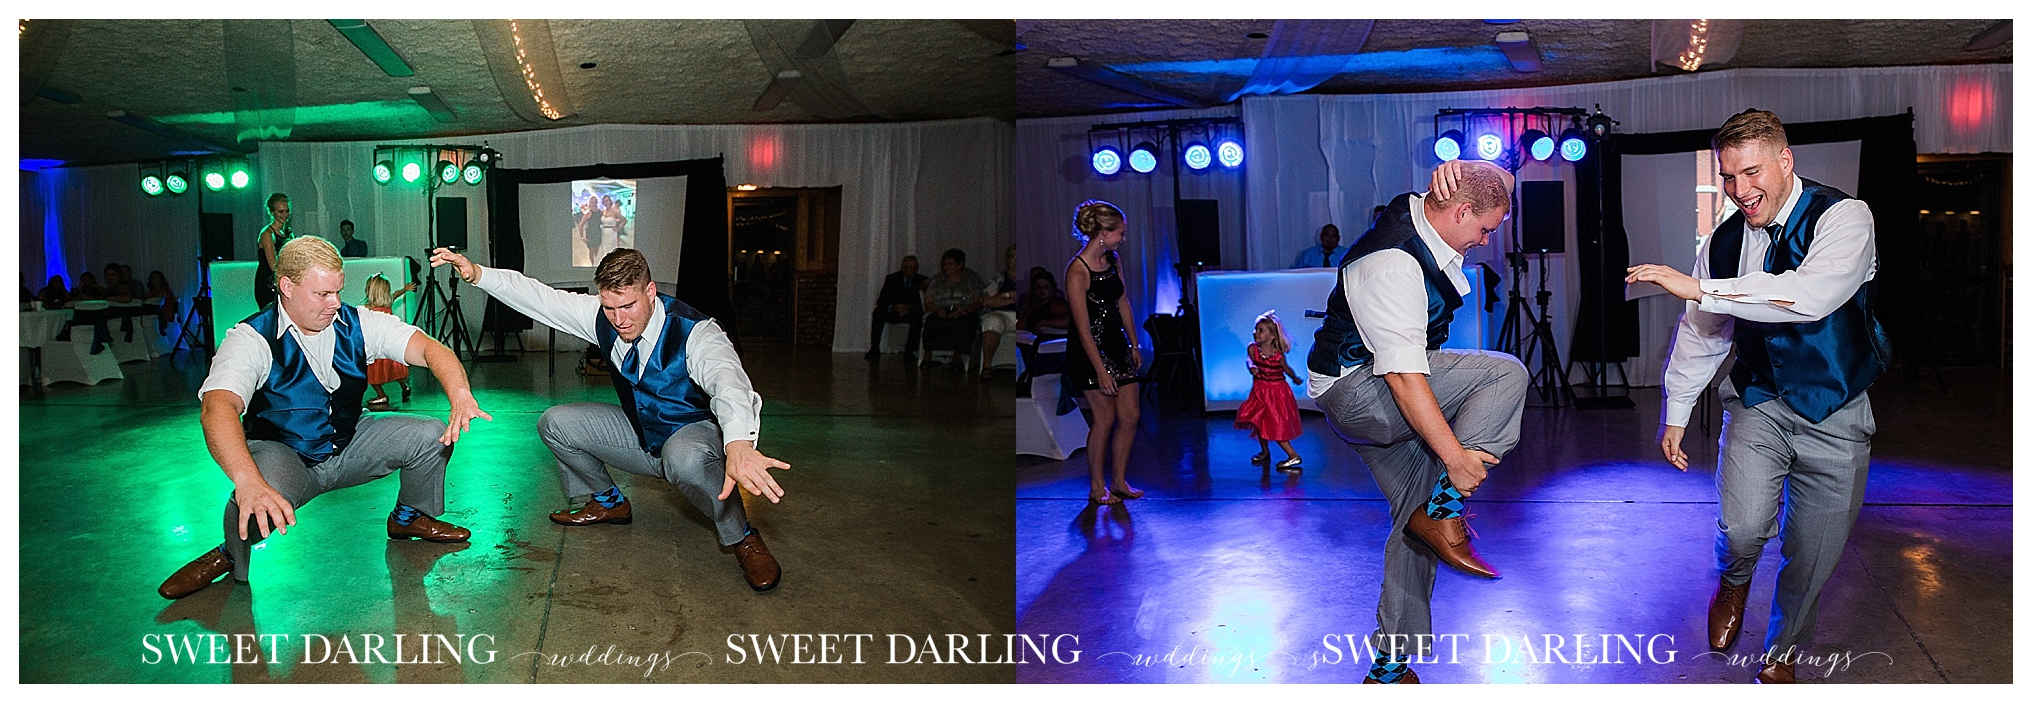 champaign-county-royal-paxton-illinois-sweet-darling-weddings-photography-red-navy-roses_1412.jpg